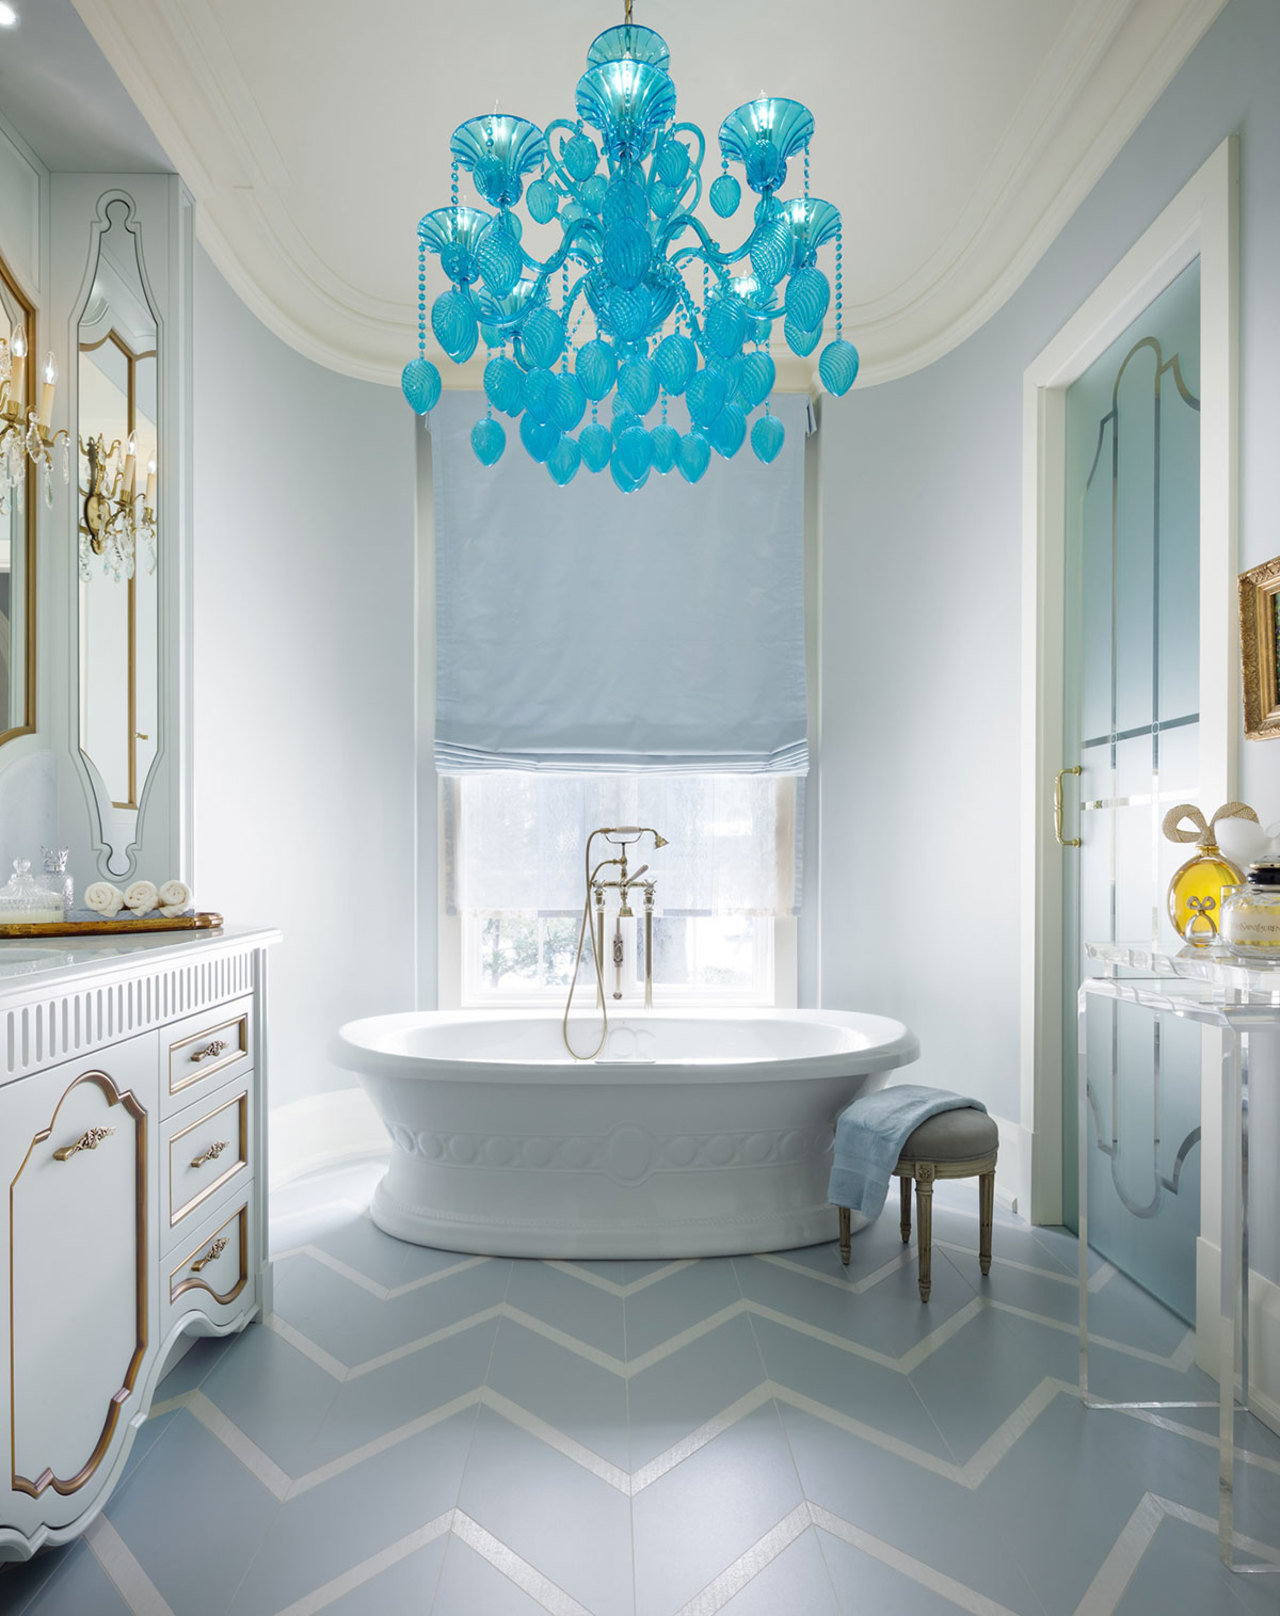 A standout blue glass chandelier over a floating tub, chevron-patterned flooring, and gold-trimmed ca